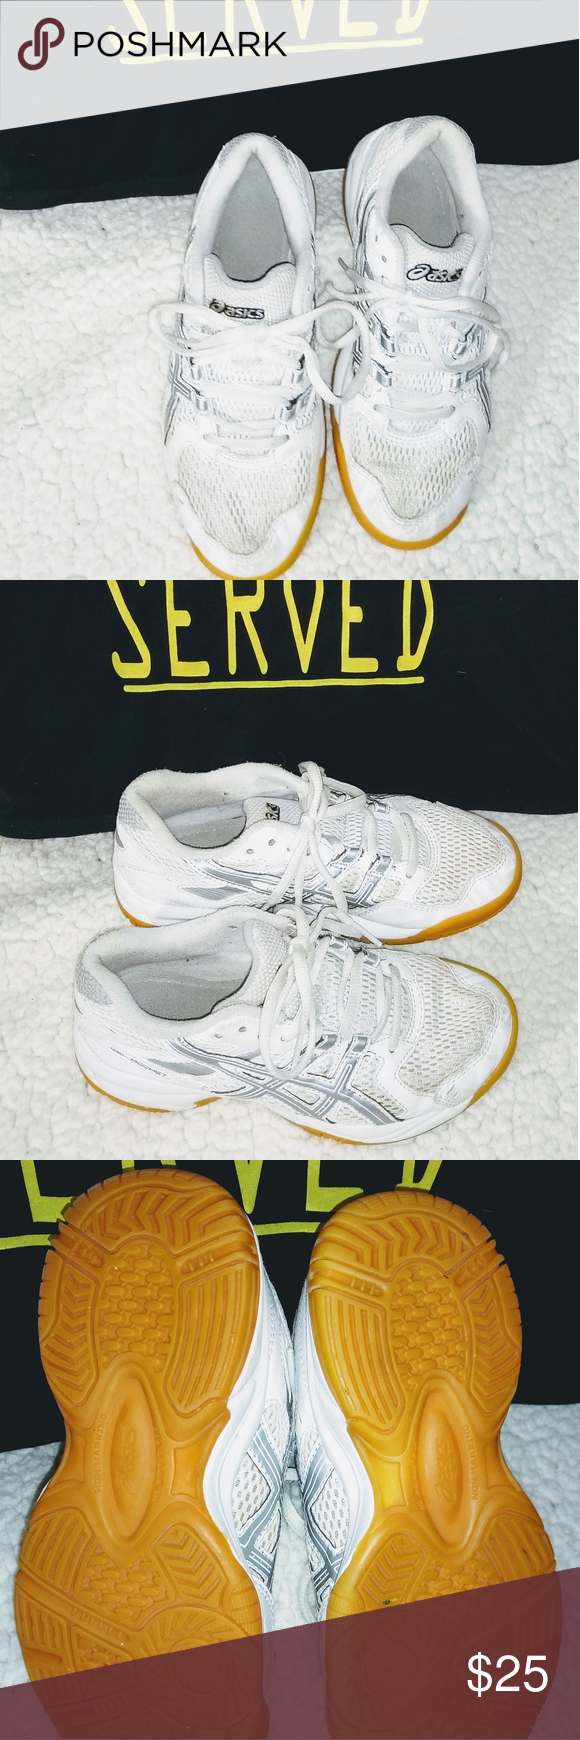 Asics White Volleyball Shoes Youth Size 2 5 Vguc Asics White Volleyball Shoes Youth Size 2 5 Never Worn Outdoors Some Visable Wear See In 2020 Volleyball Shoes Shoes Asics